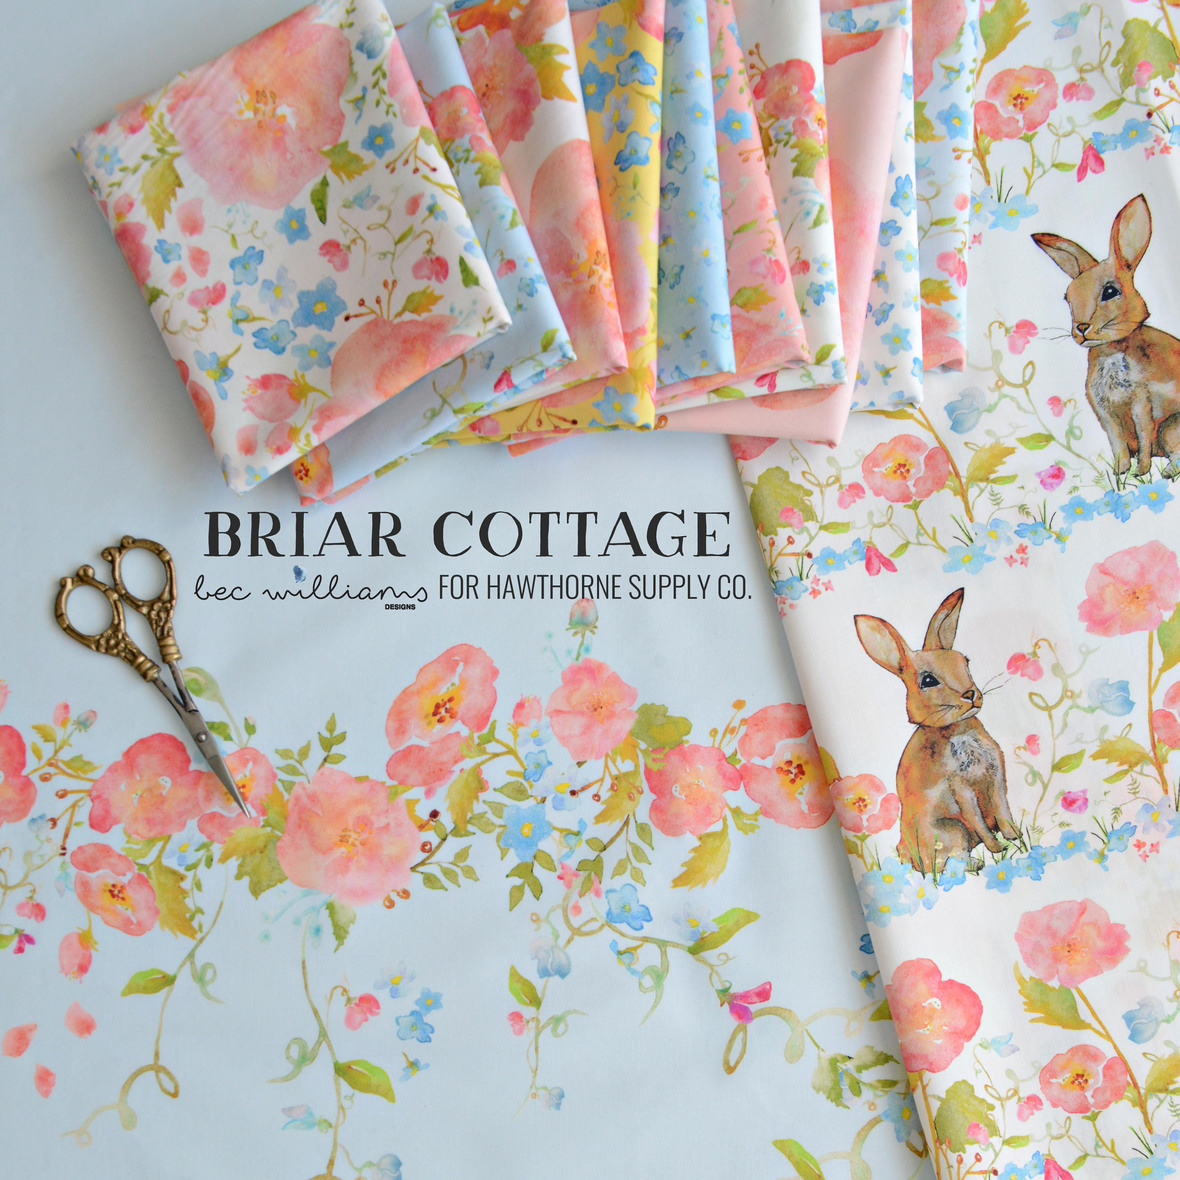 Bec Williams Briar Cottage Fabric Poster at Hawthorne Supply Co